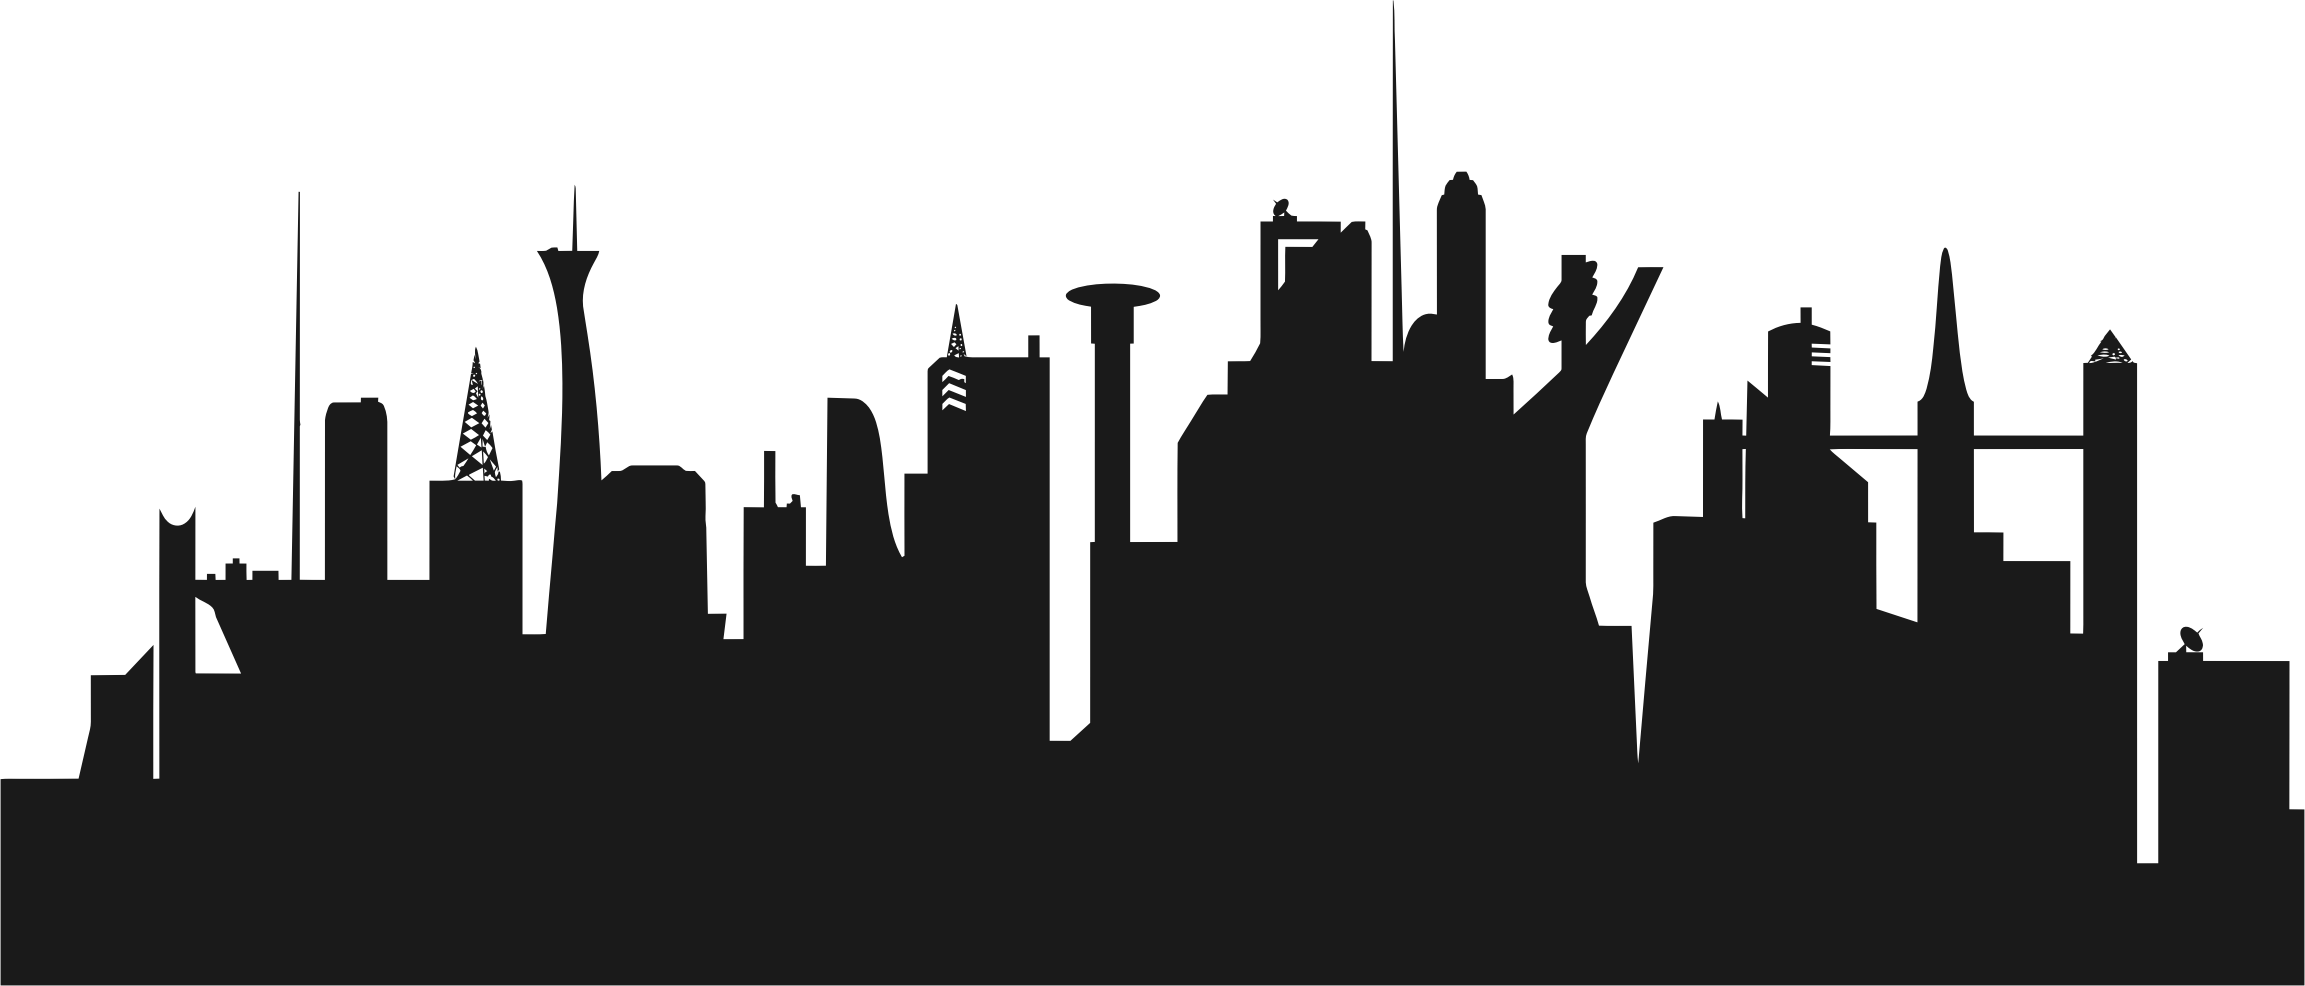 Maryland vector skyline. Futuristic city icons png